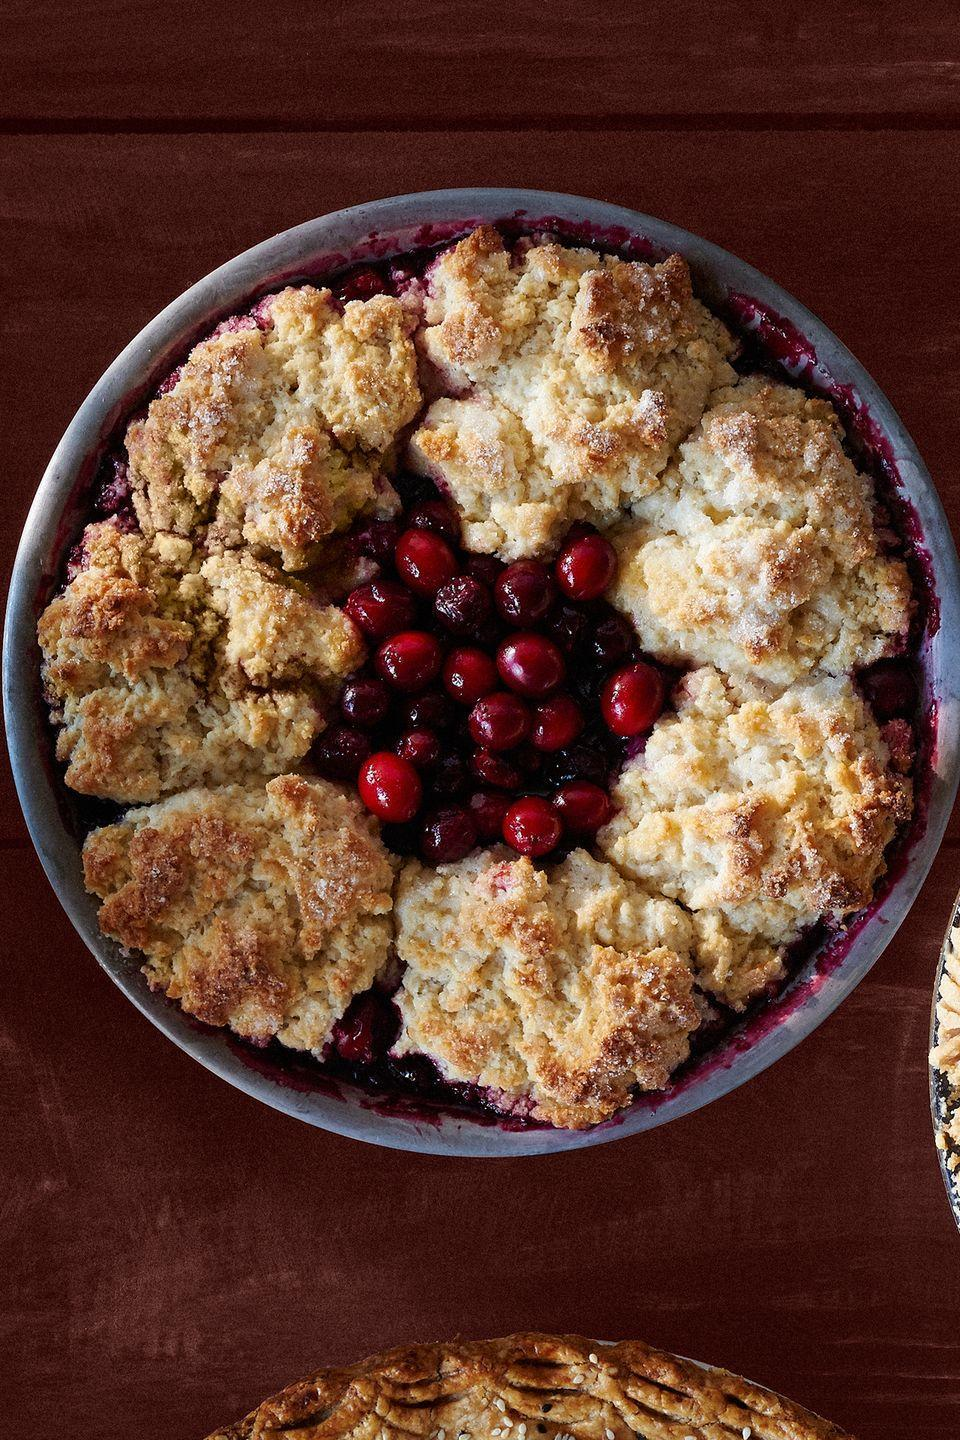 """<p>This dessert is two in one: cobbler and pie at the same time!</p><p><strong><a href=""""https://www.countryliving.com/food-drinks/recipes/a36549/cranberry-cherry-cobbler-pie/"""" rel=""""nofollow noopener"""" target=""""_blank"""" data-ylk=""""slk:Get the recipe"""" class=""""link rapid-noclick-resp"""">Get the recipe</a>.</strong> </p>"""